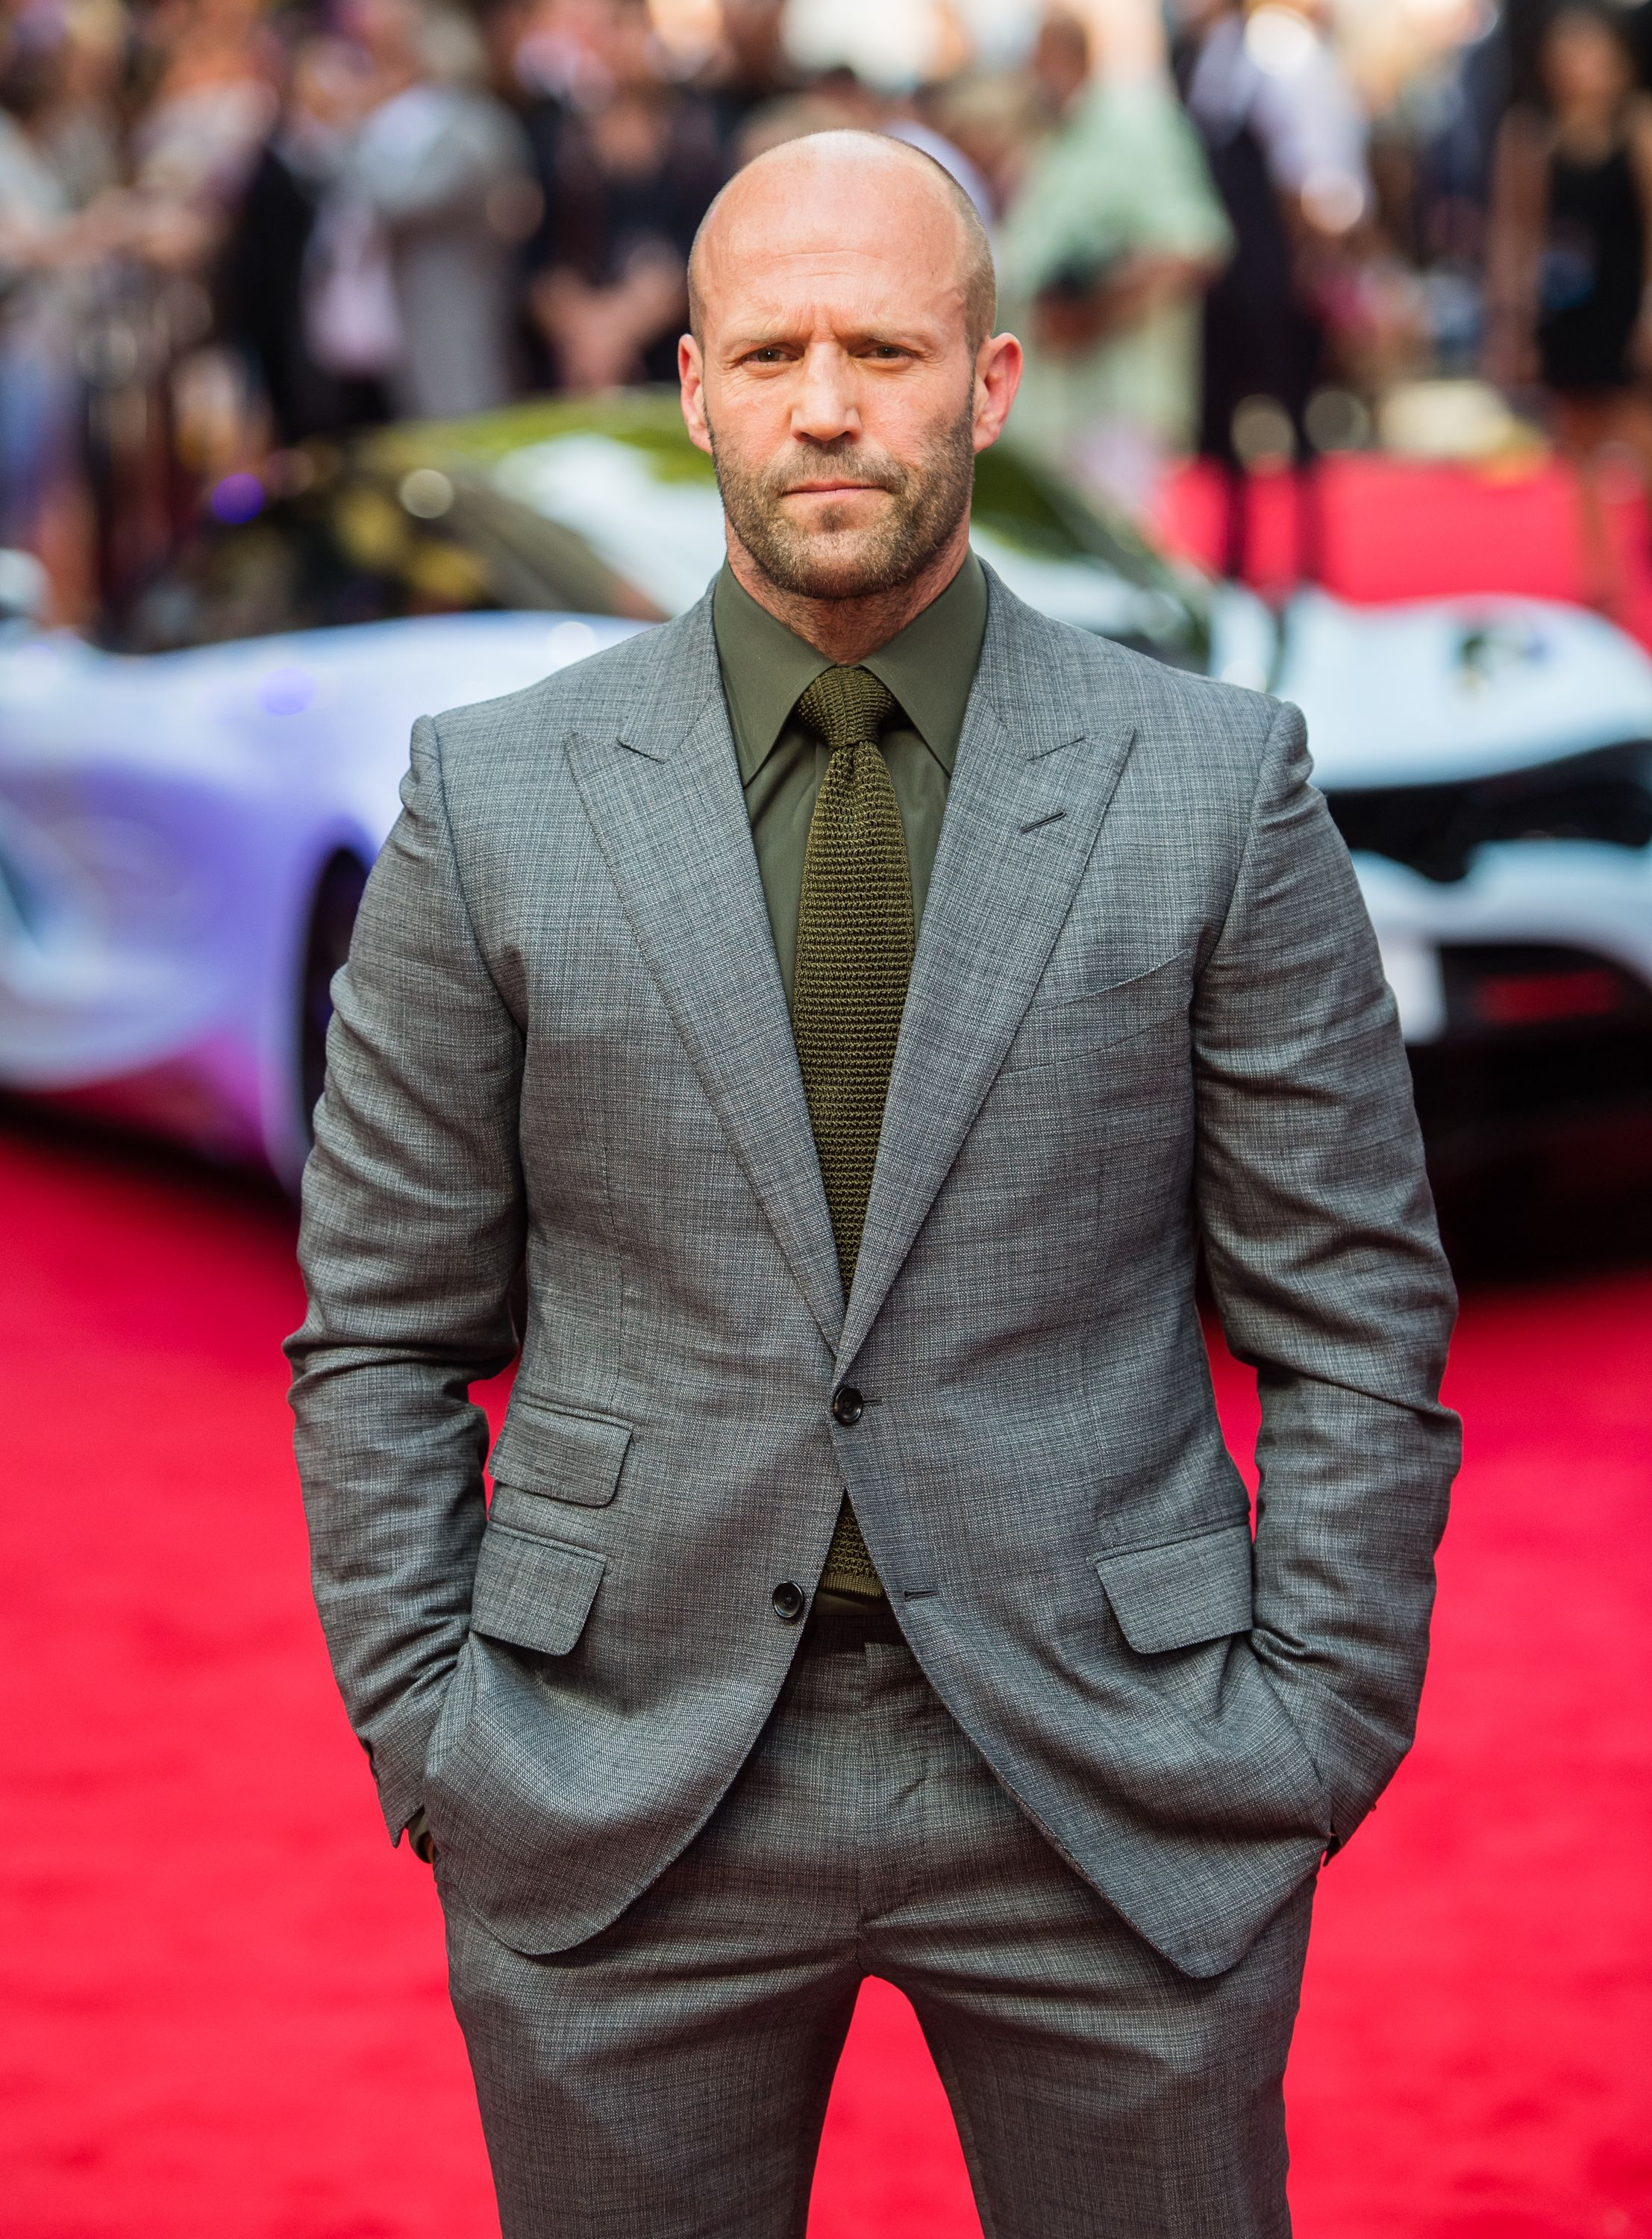 An amazing photo showing Jason Statham dressed in a well-fitted grey suit and pant at a red carpet show.